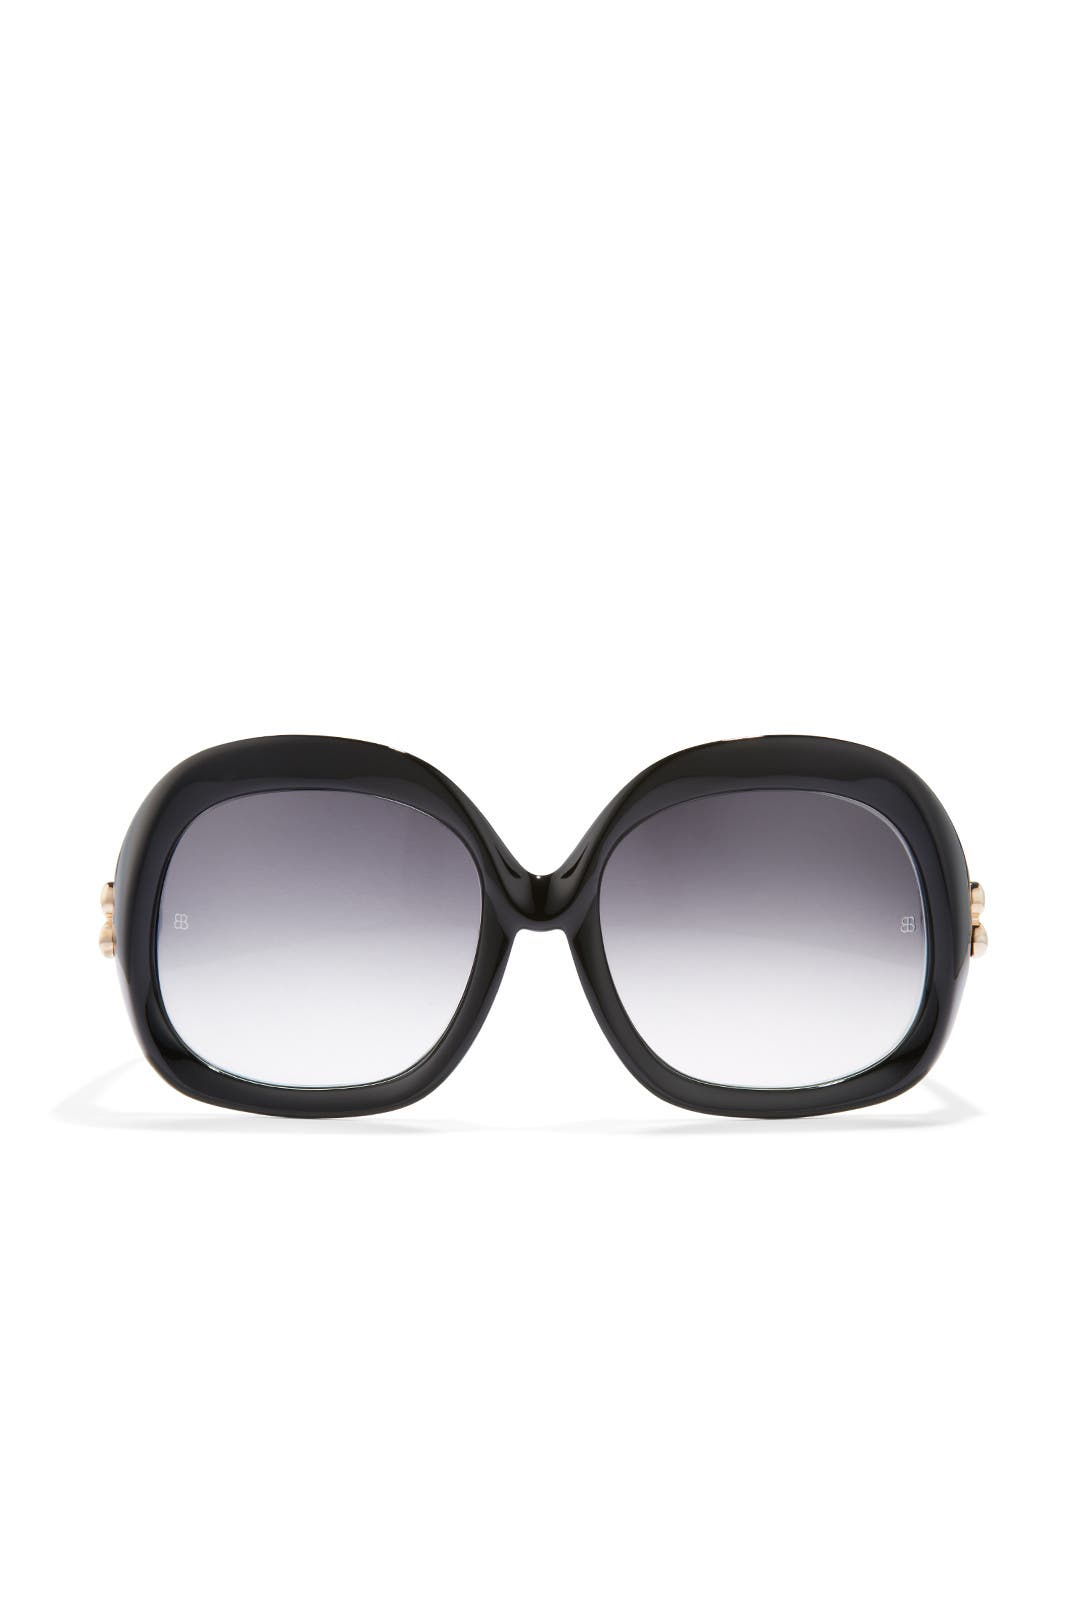 Astor Sunglasses by Balenciaga Accessories